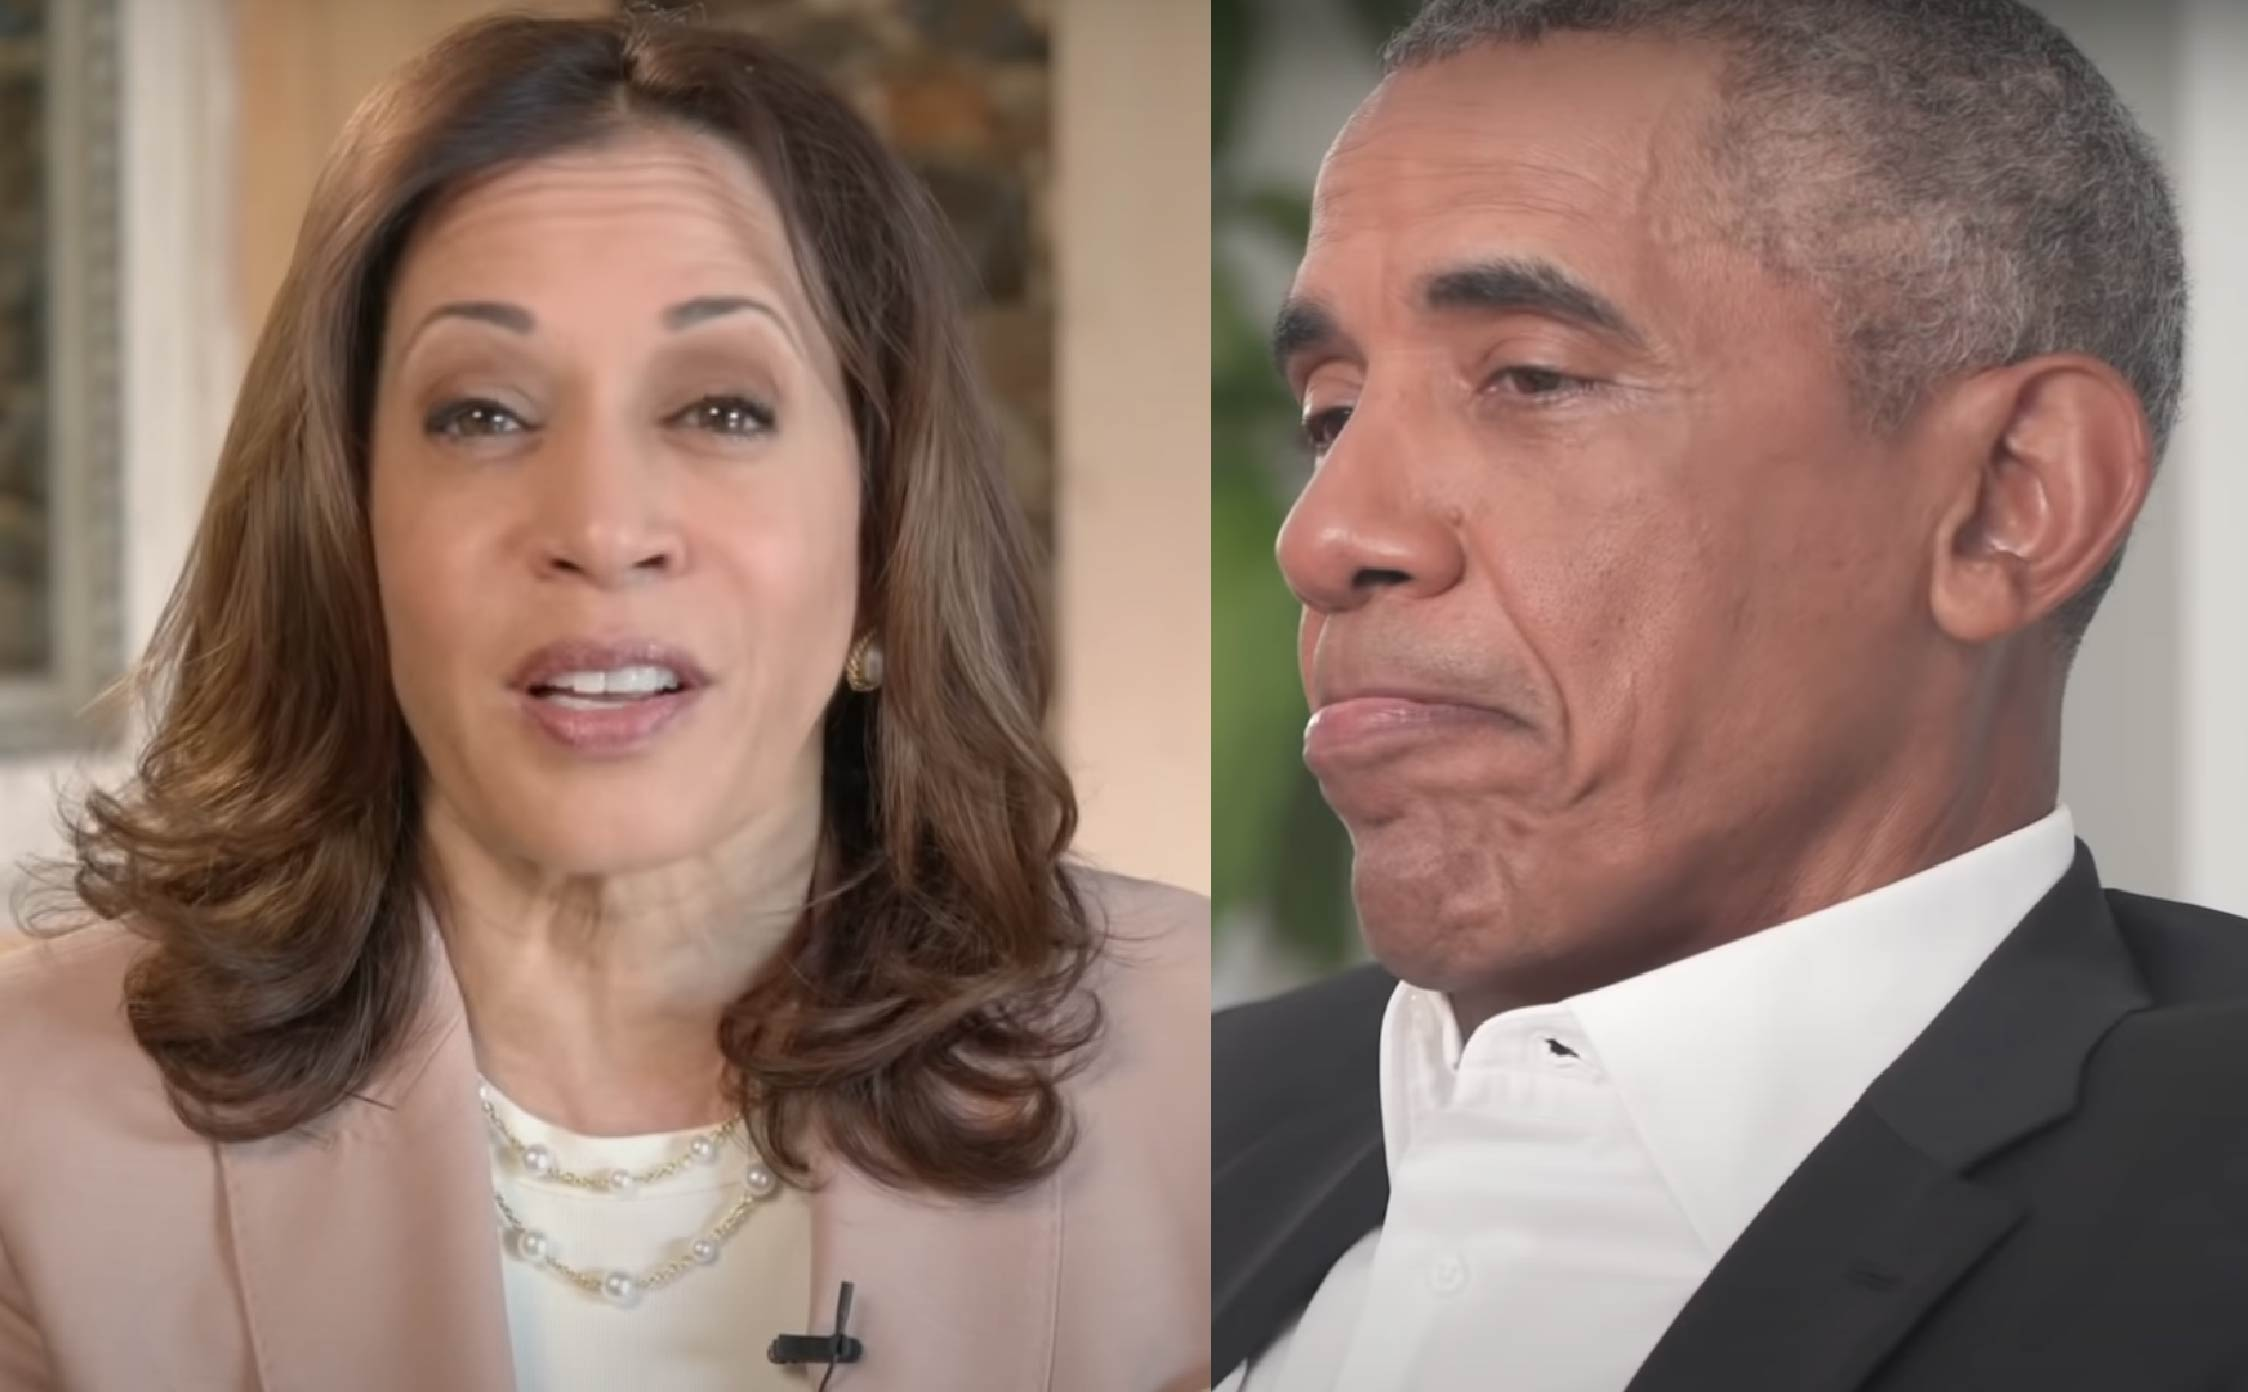 [WATCH] Kamala and Barack's Latest Pandering Video is Proof Dems Have Hit Rock Bottom